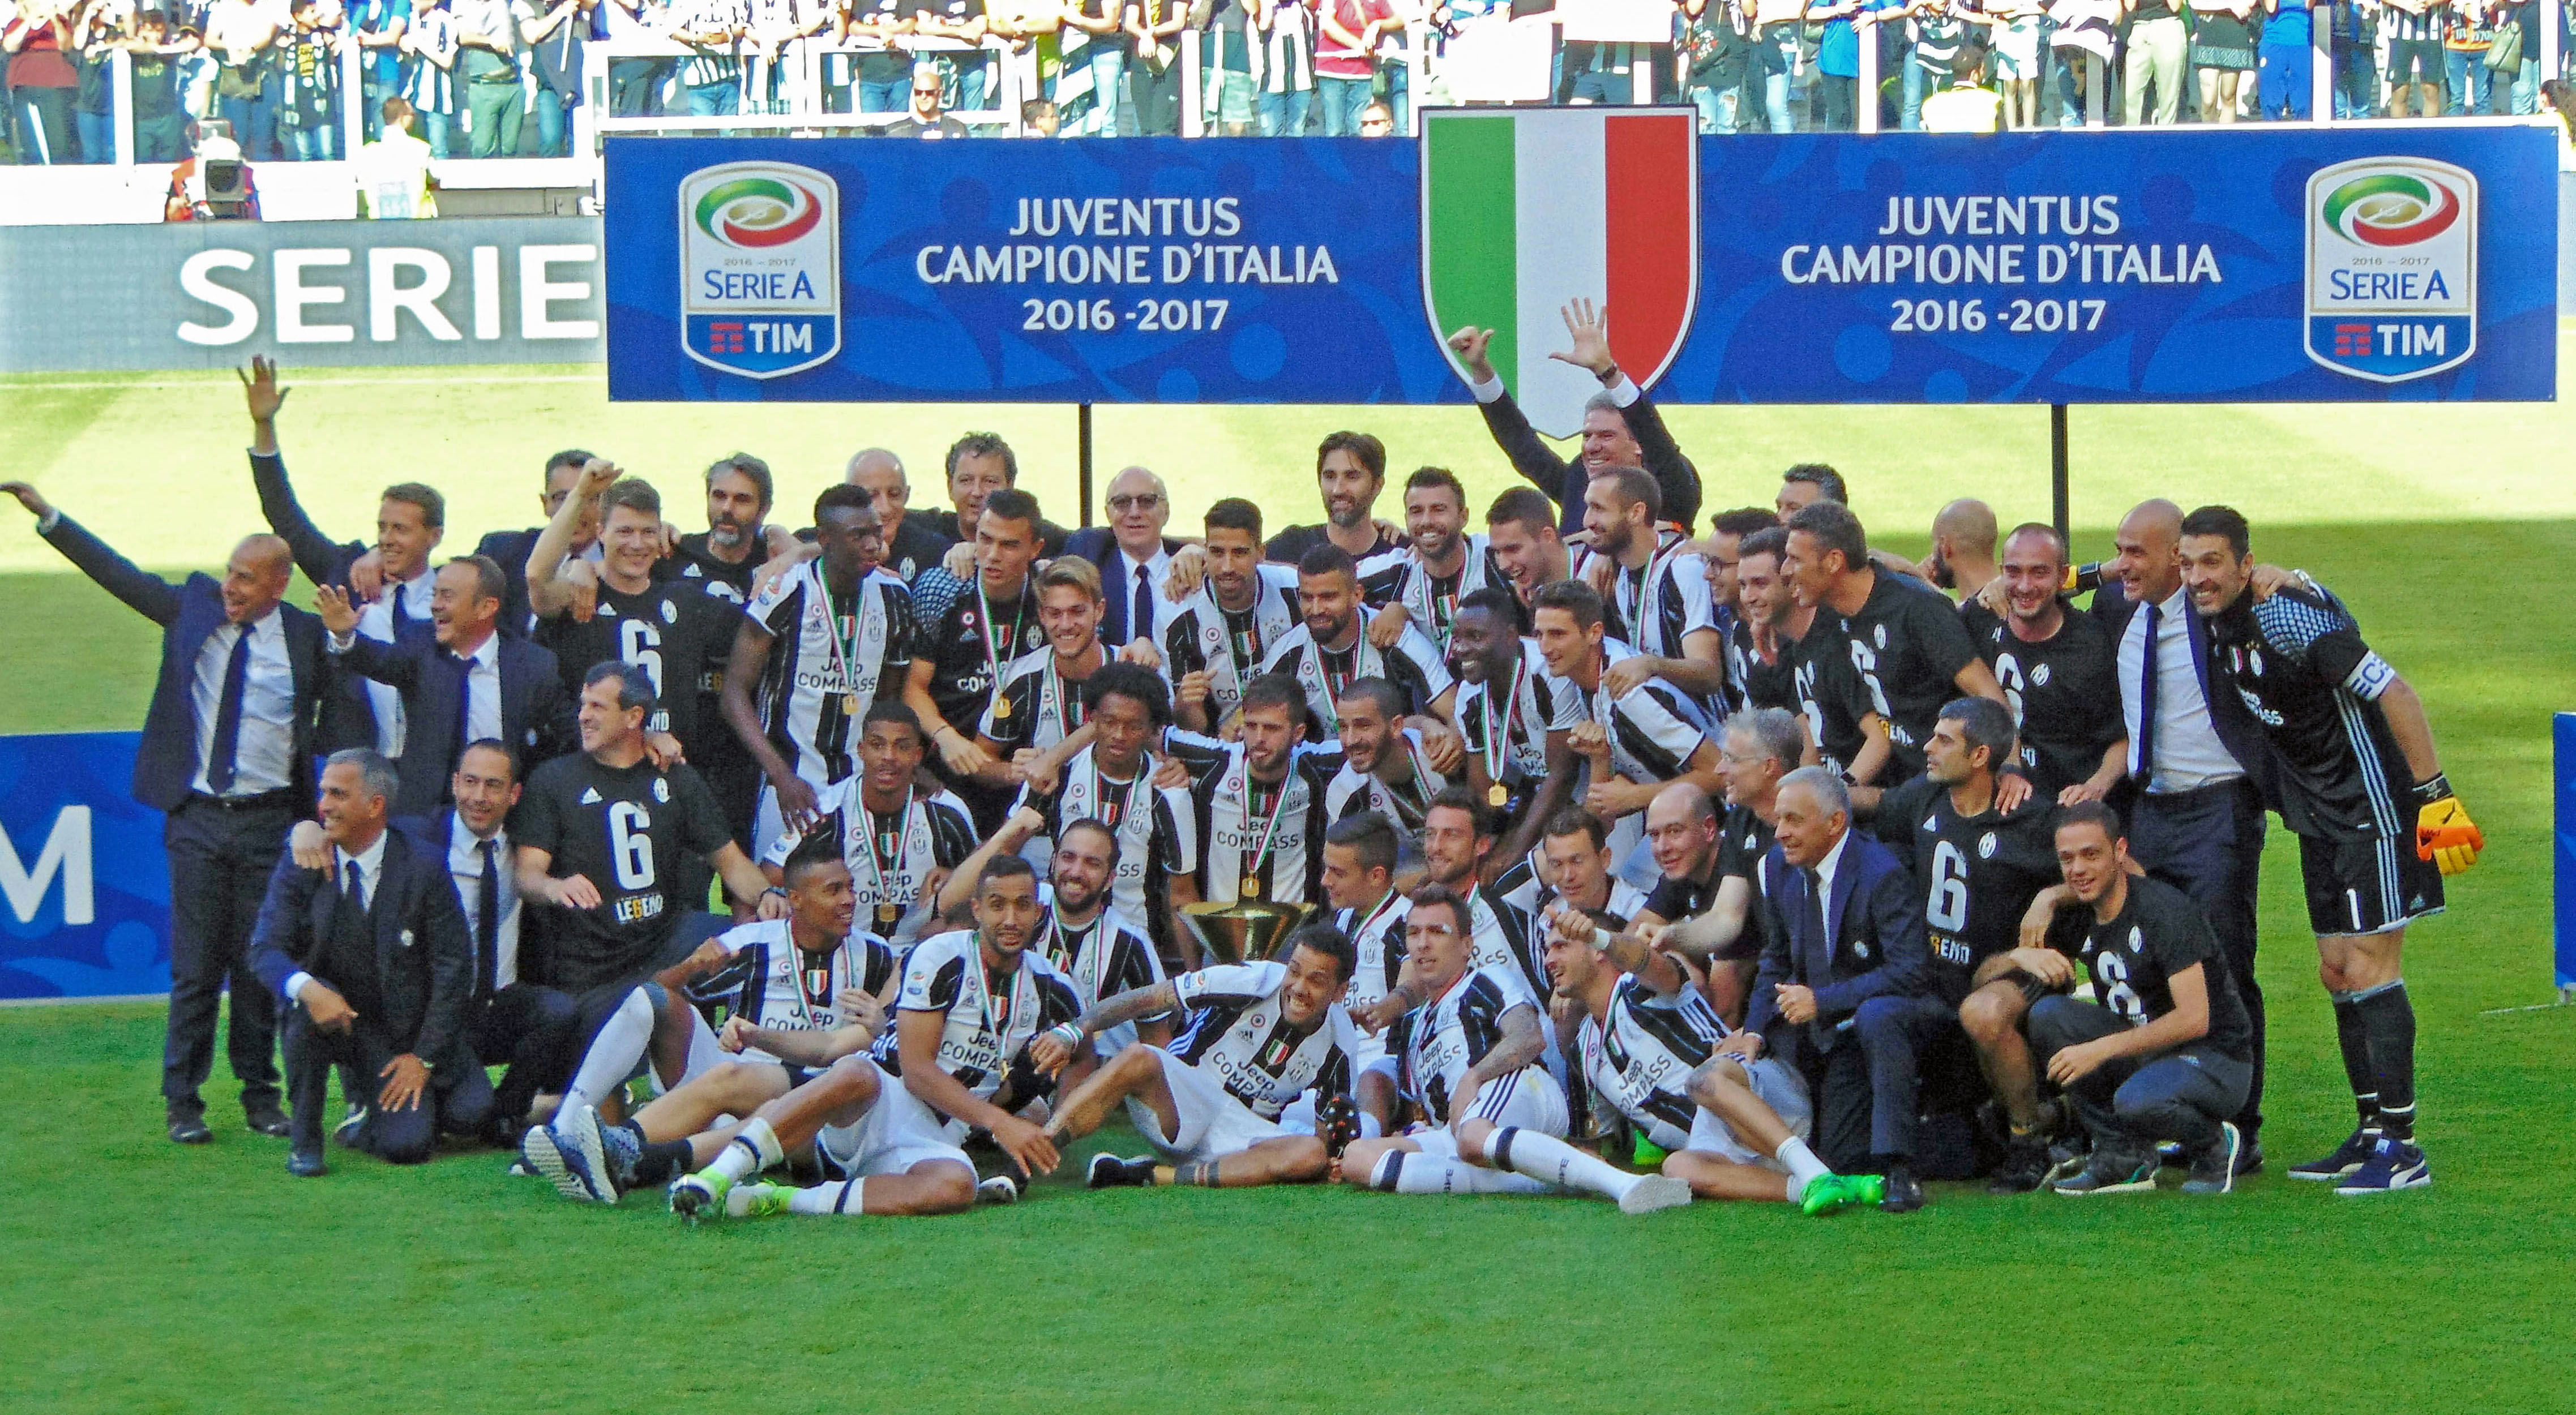 Juventus_FC_-_Serie_A_champions_2016-17_